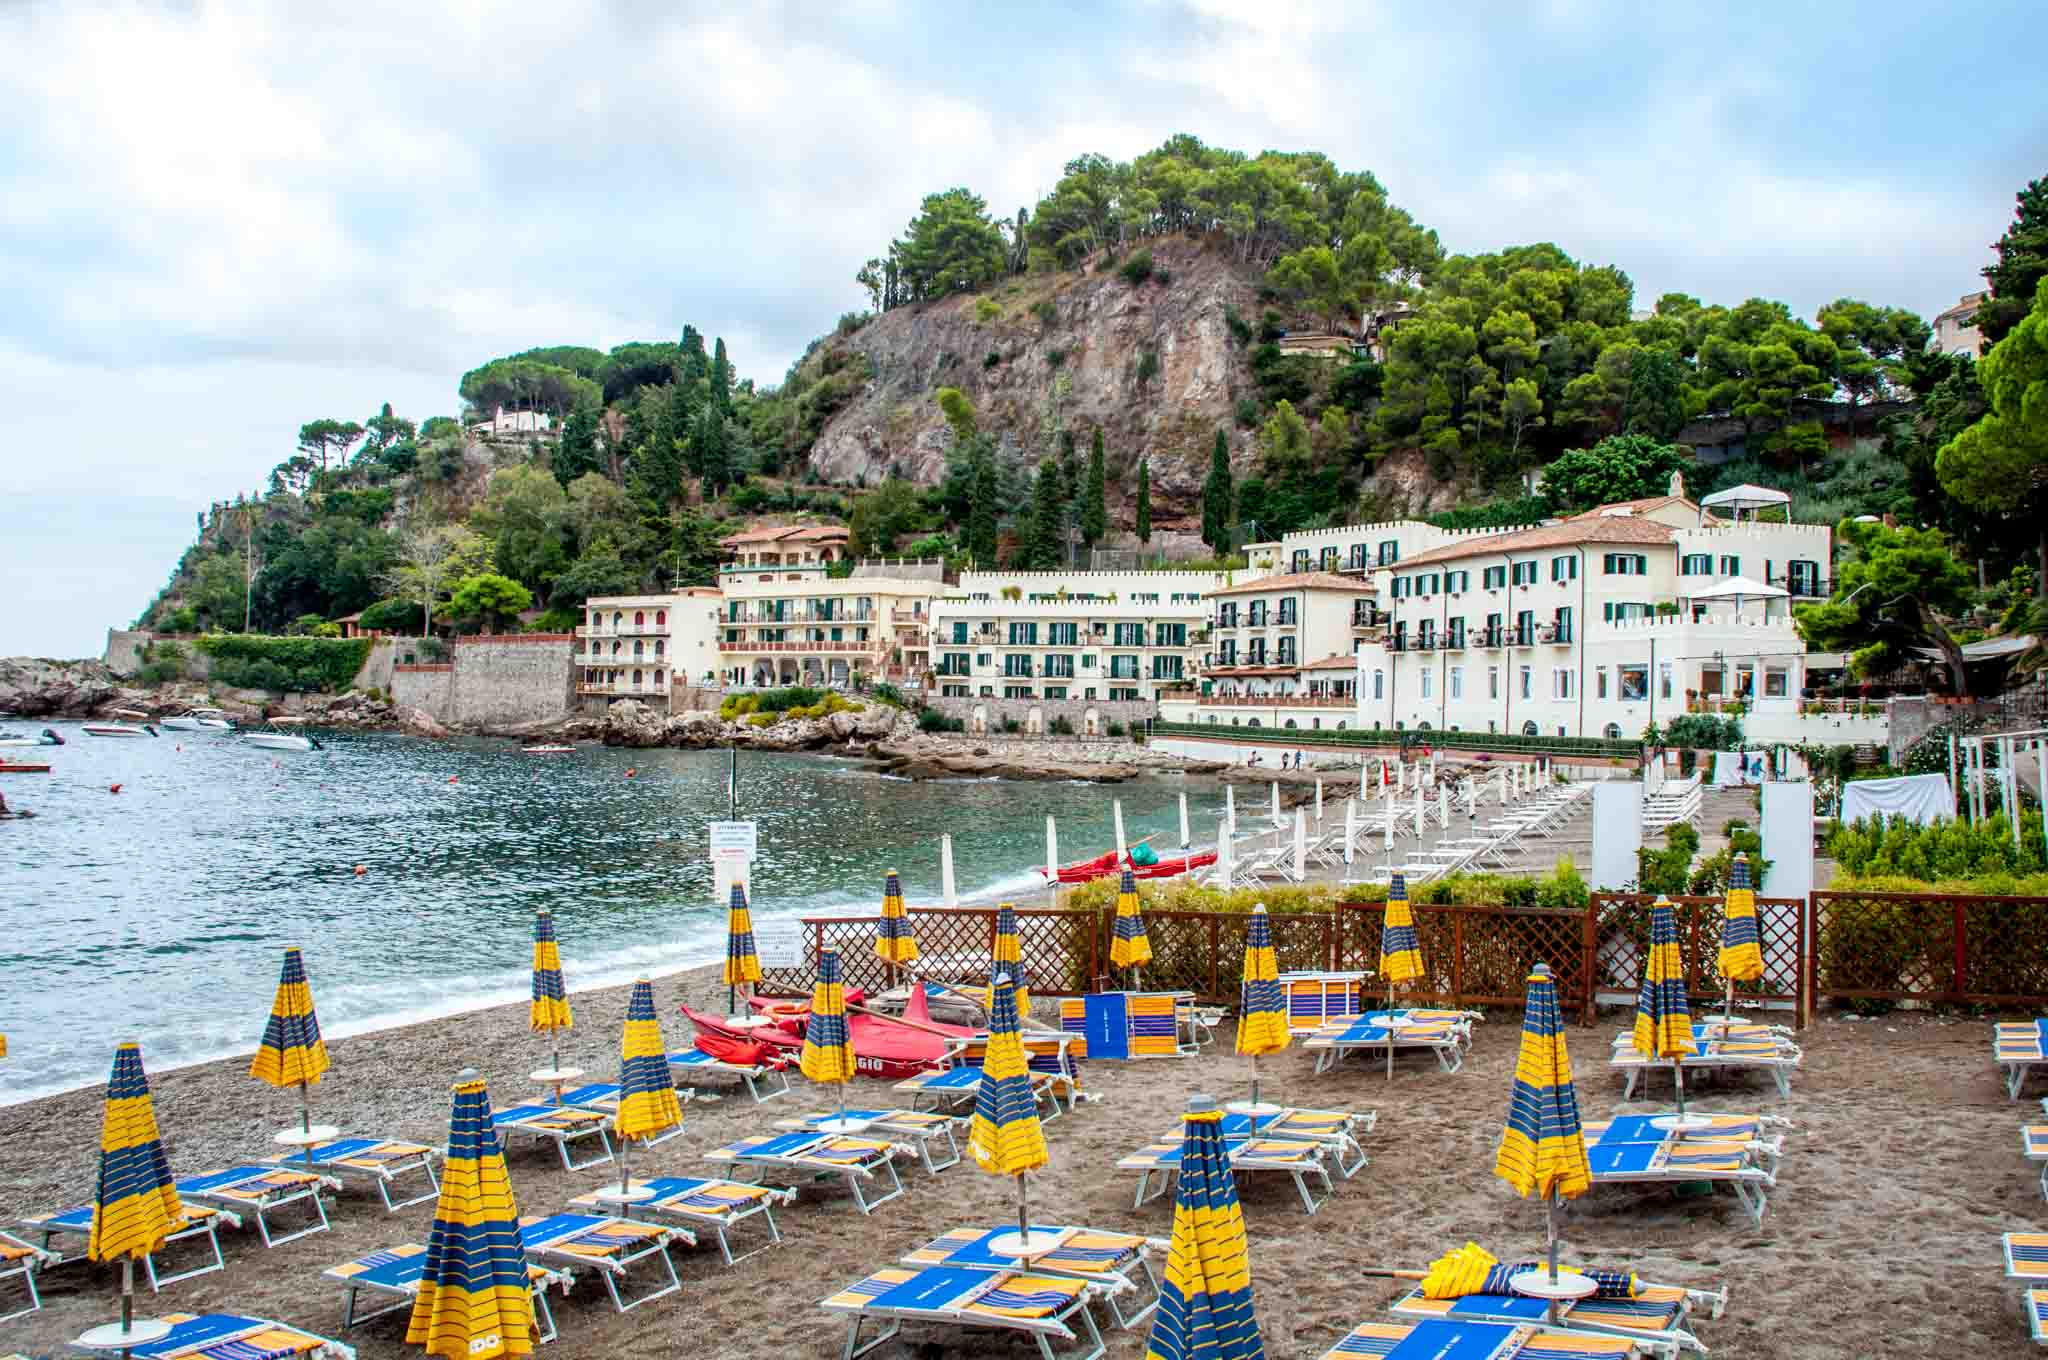 Chairs and umbrellas on a beach beside a hotel